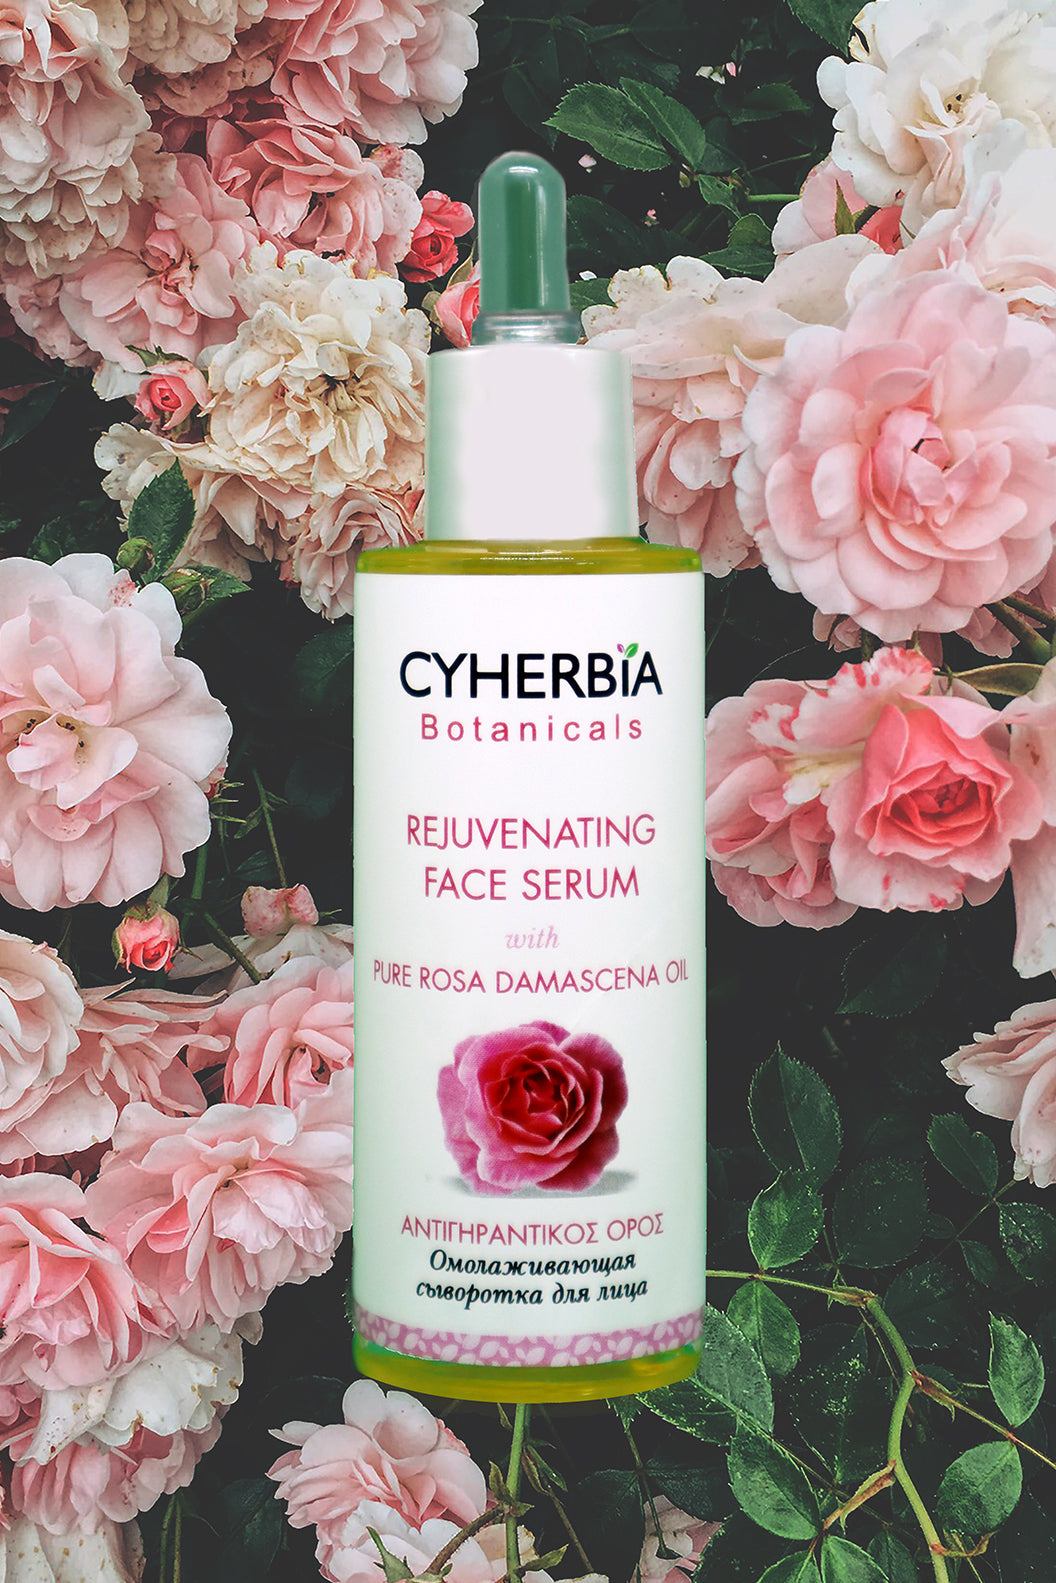 Rejuvenating Face Serum with Pure Rosa Damascena Oil, 30ml